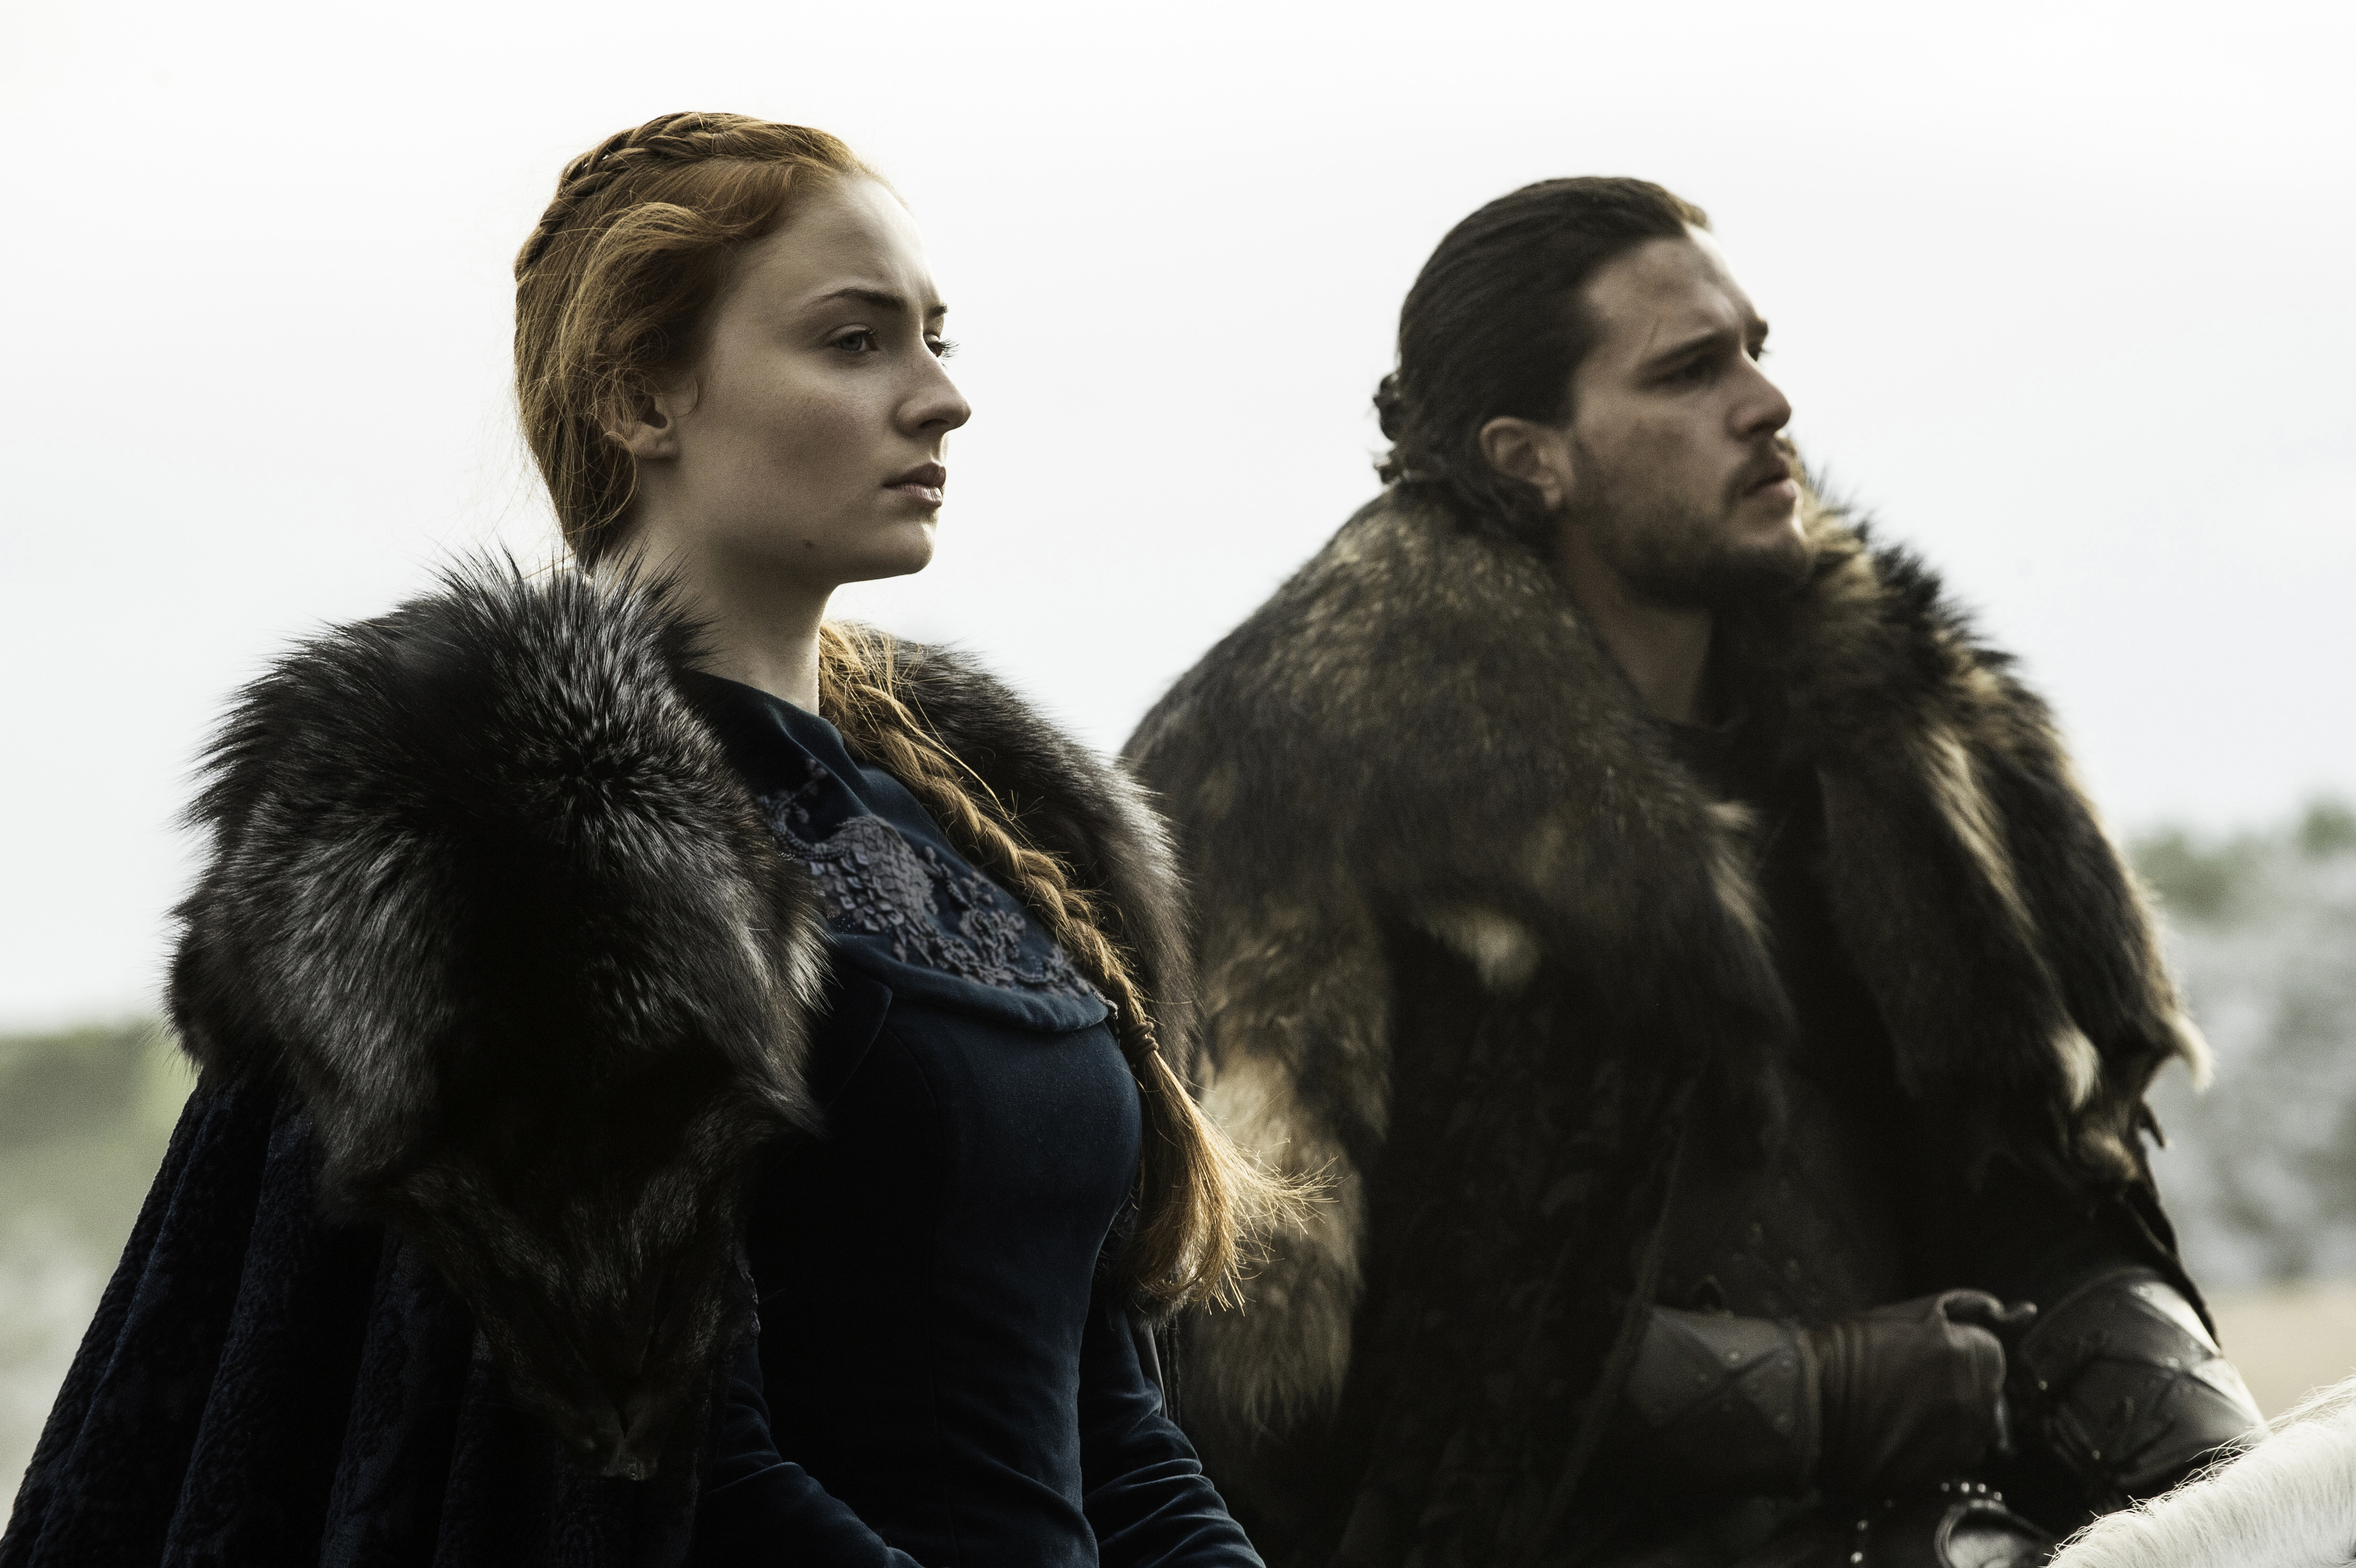 Sophie Turner and Kit Harington in Game of Thrones, season 6, episode 9.